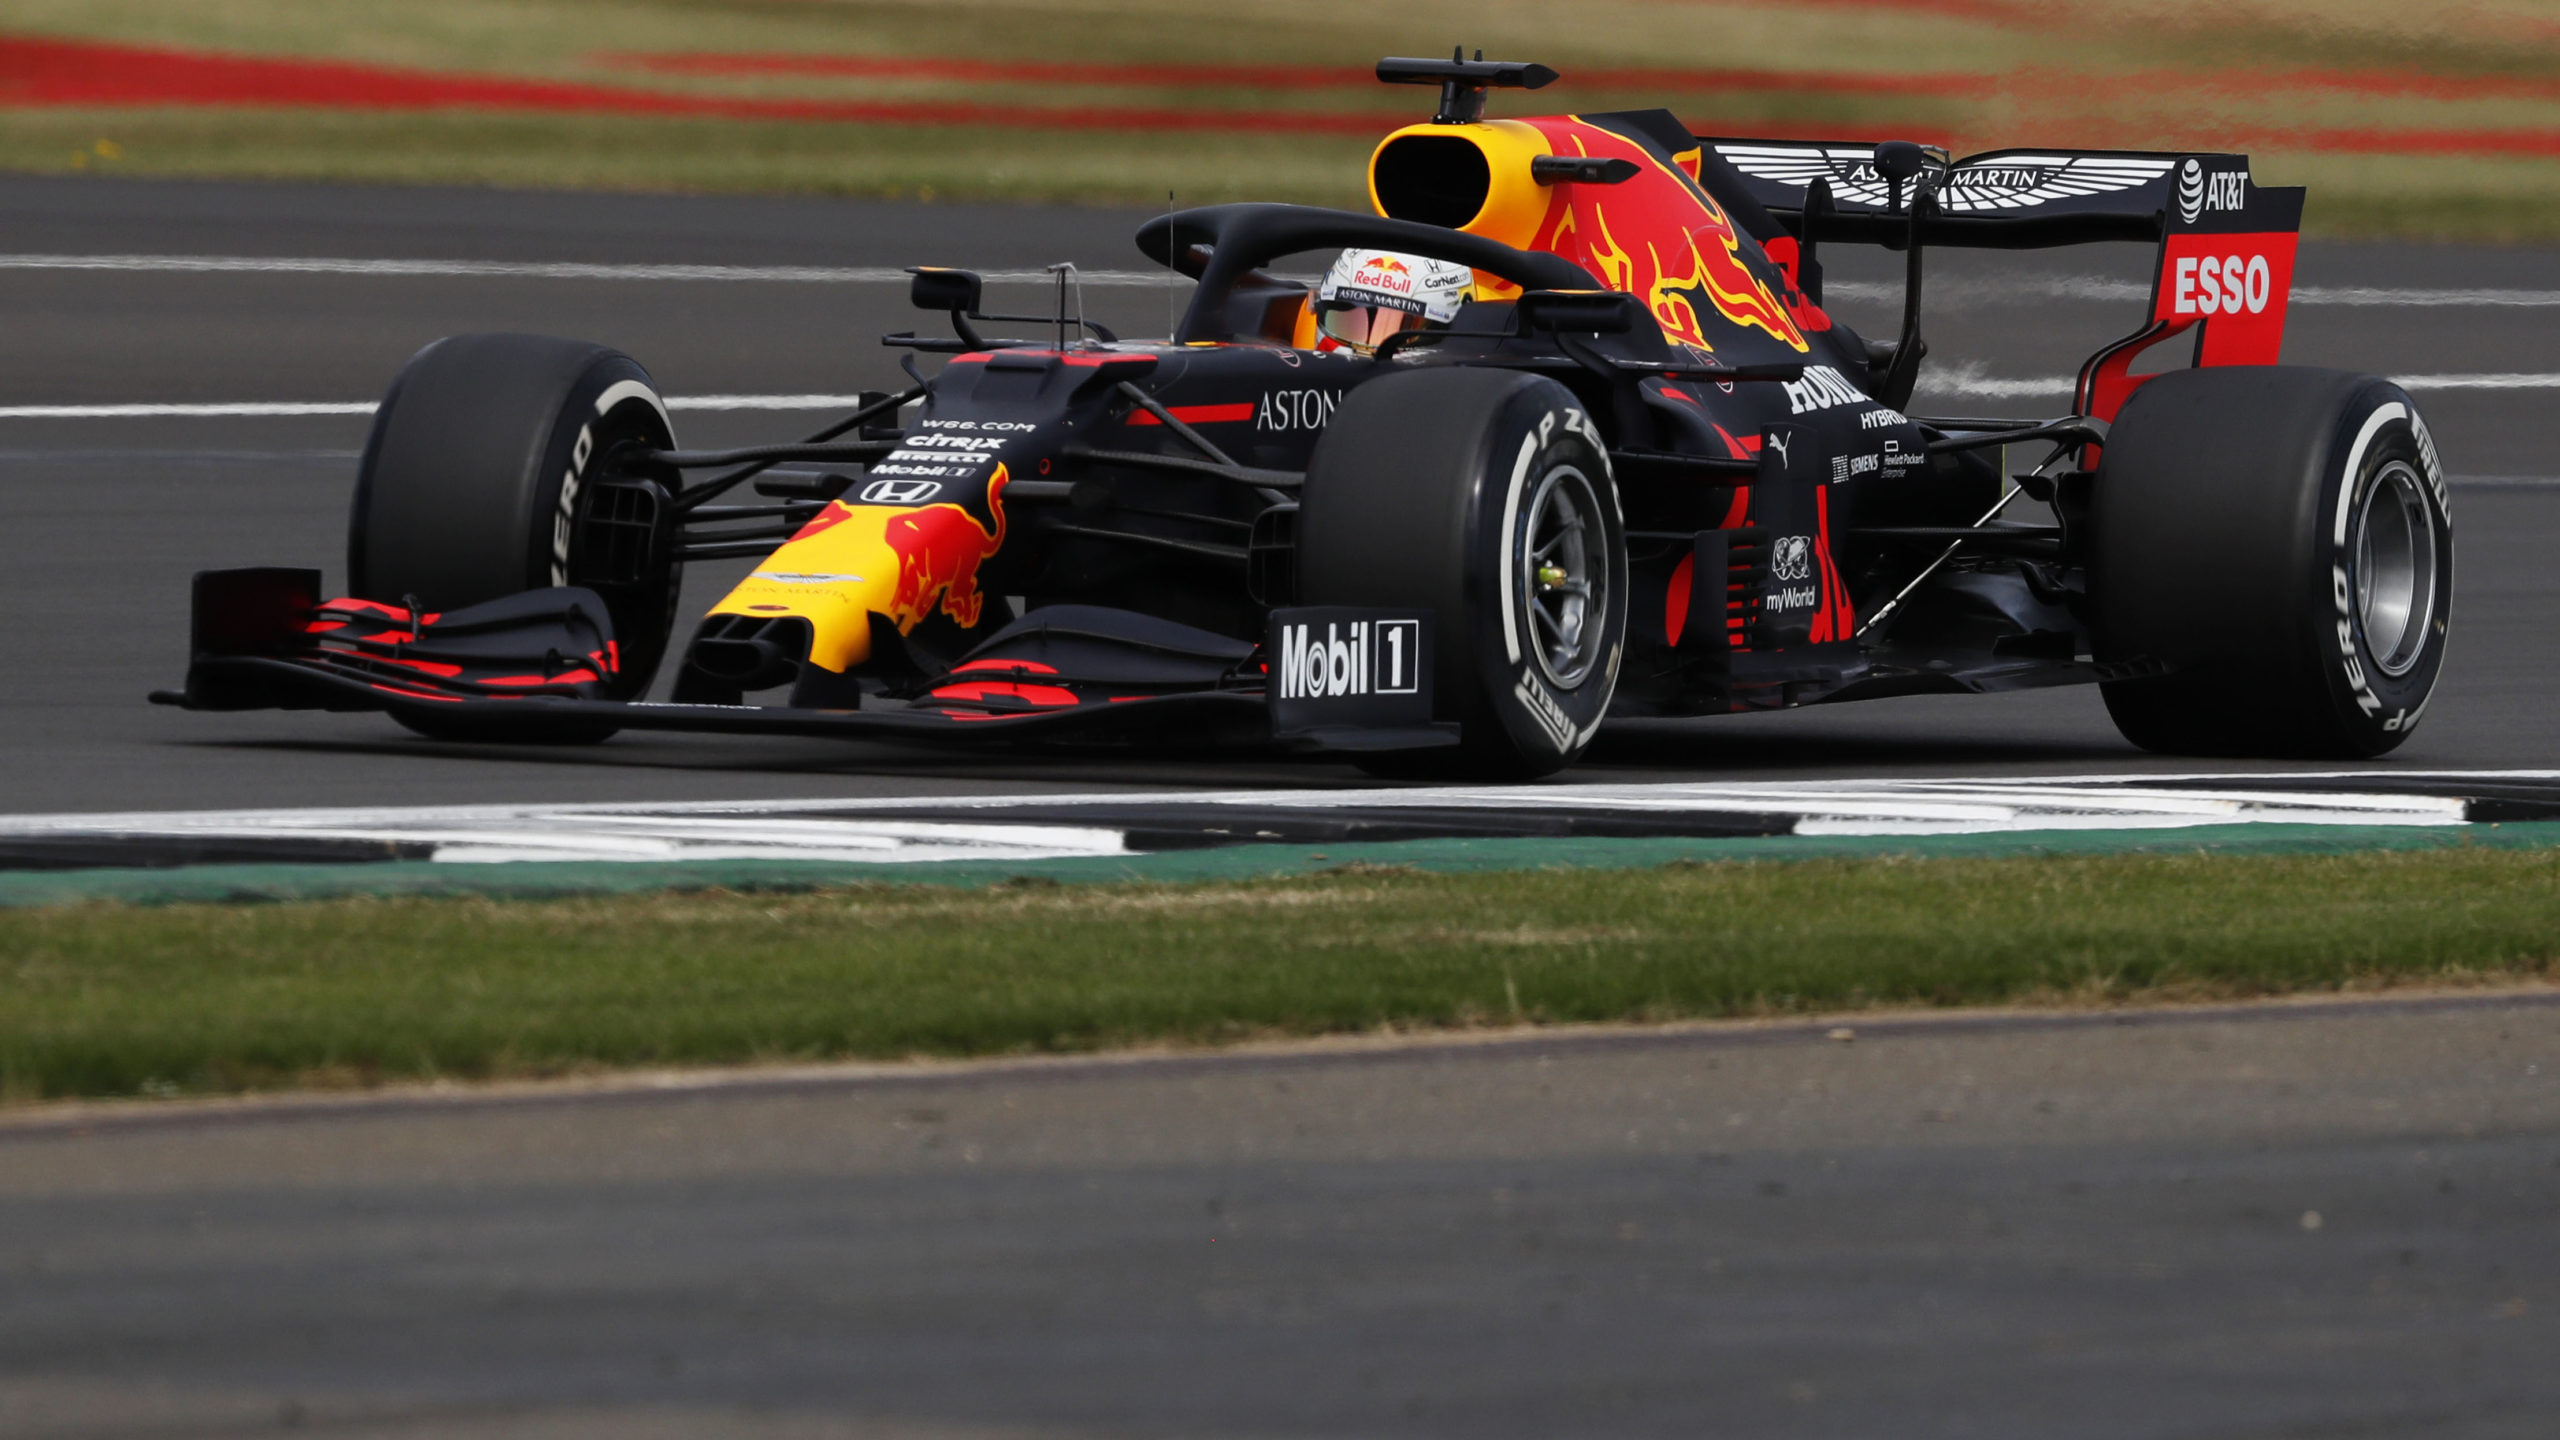 Max-Verstappen-on-hard-tyres-during-qualifying-at-Silverstone-for-the-2020-f1-70th-Anniversary-Grand-Prix